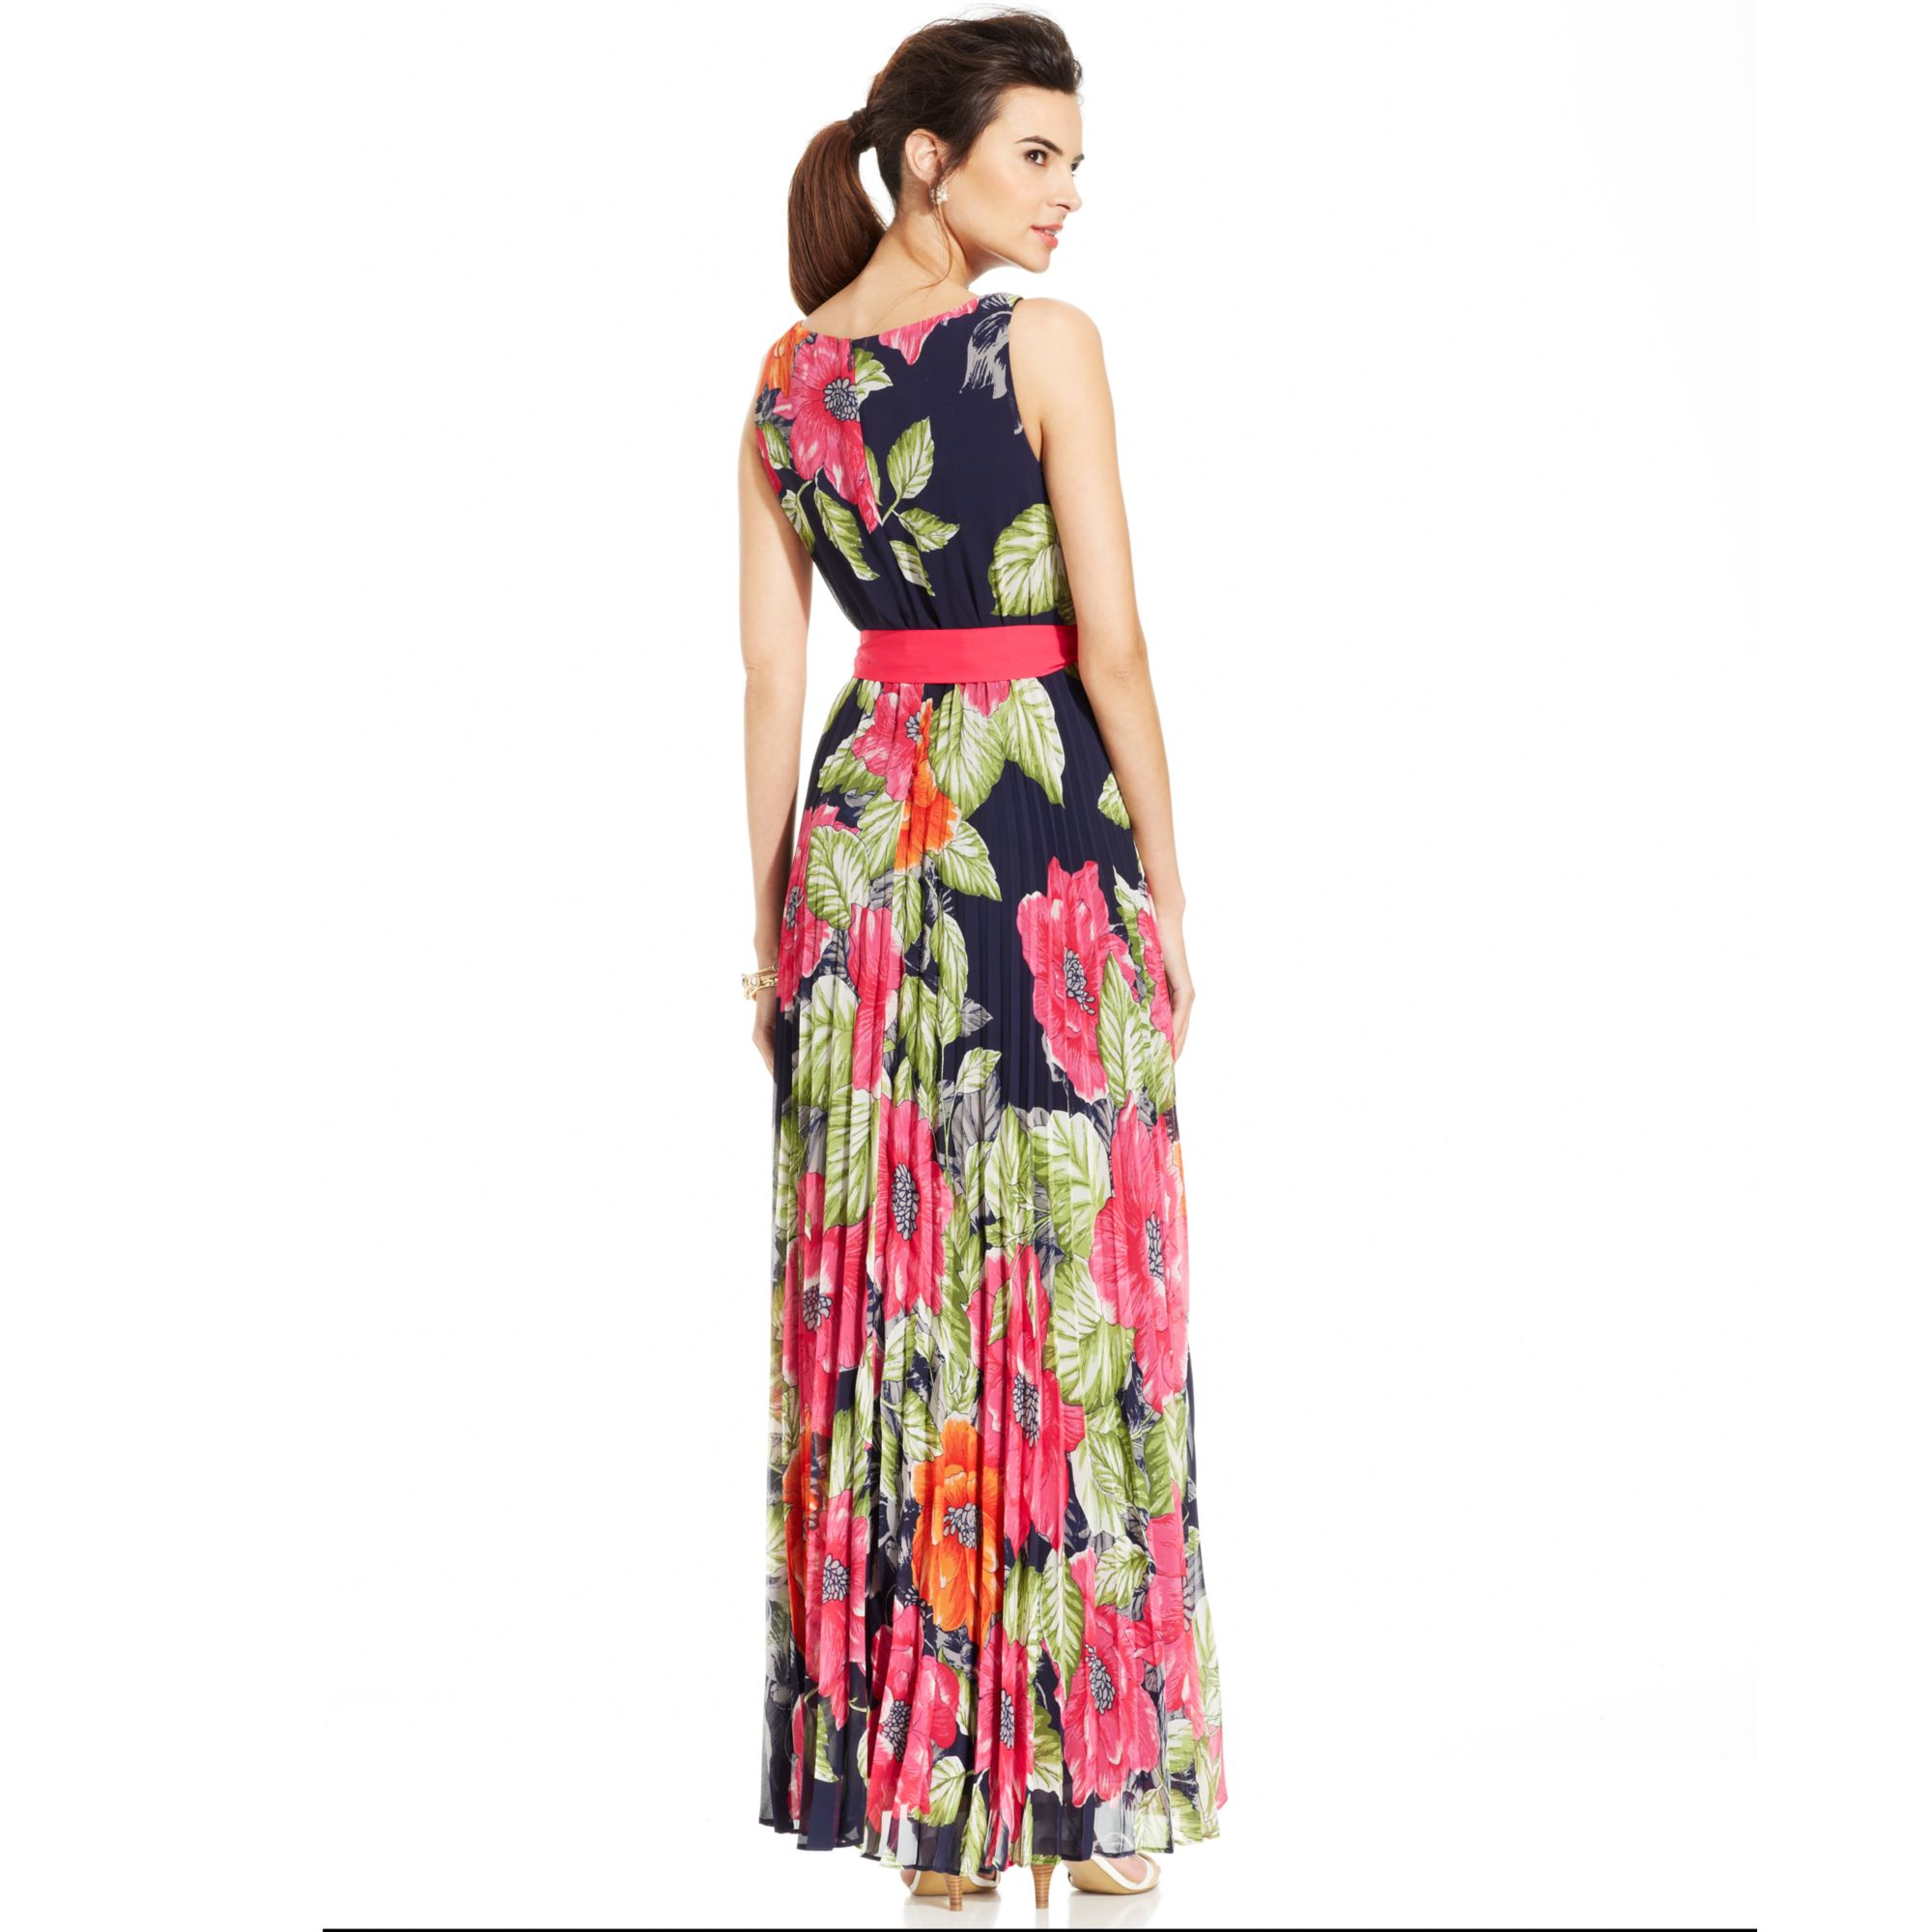 Lyst Eliza J Sleeveless Floral Pleated Maxi Dress In Red